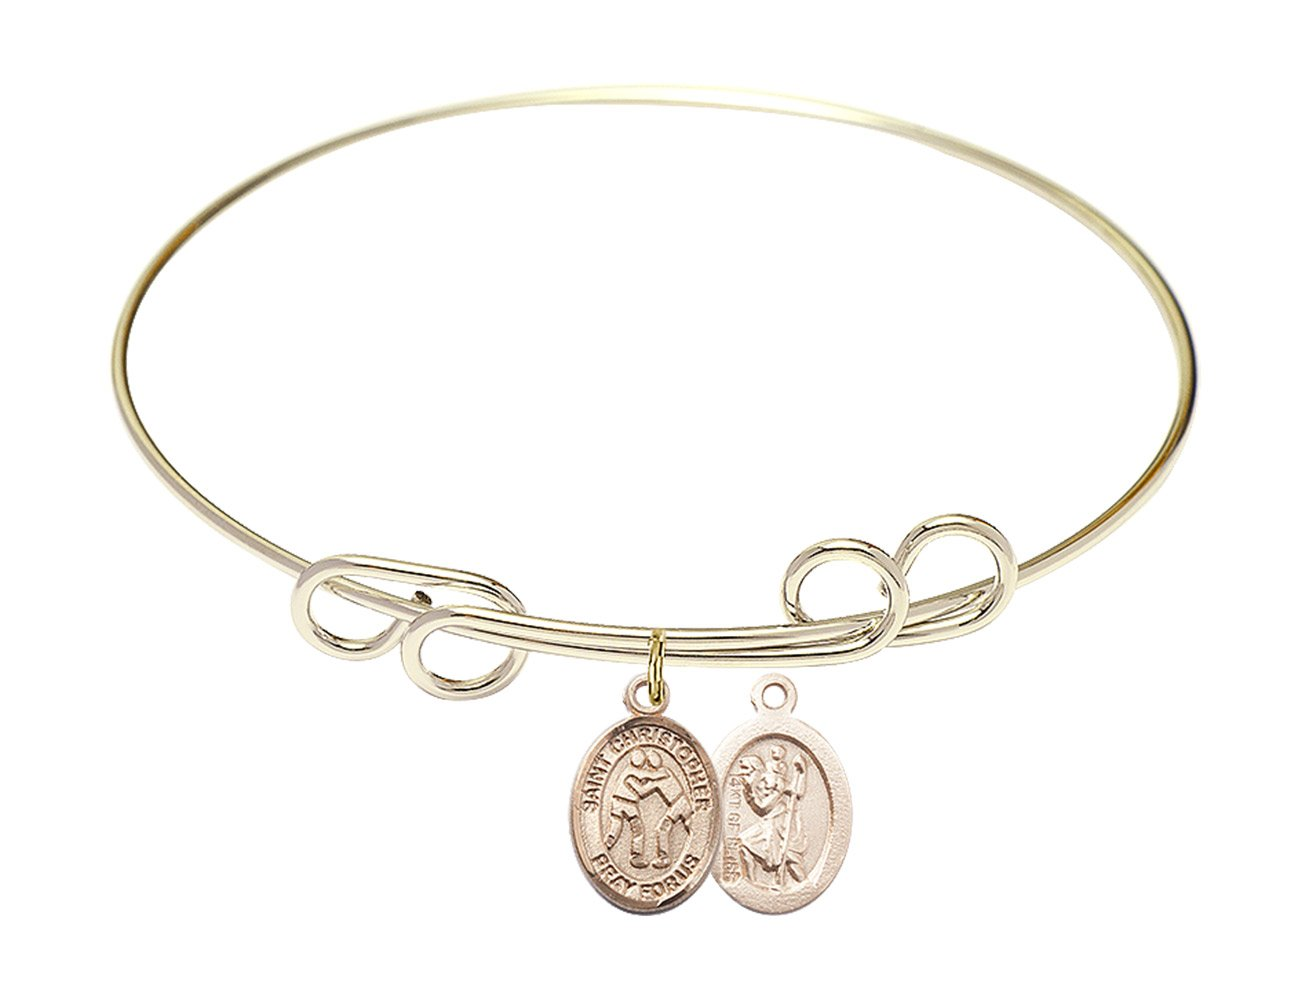 8 inch Round Double Loop Bangle Bracelet with a St. Christopher/Wrestling charm. by F A Dumont